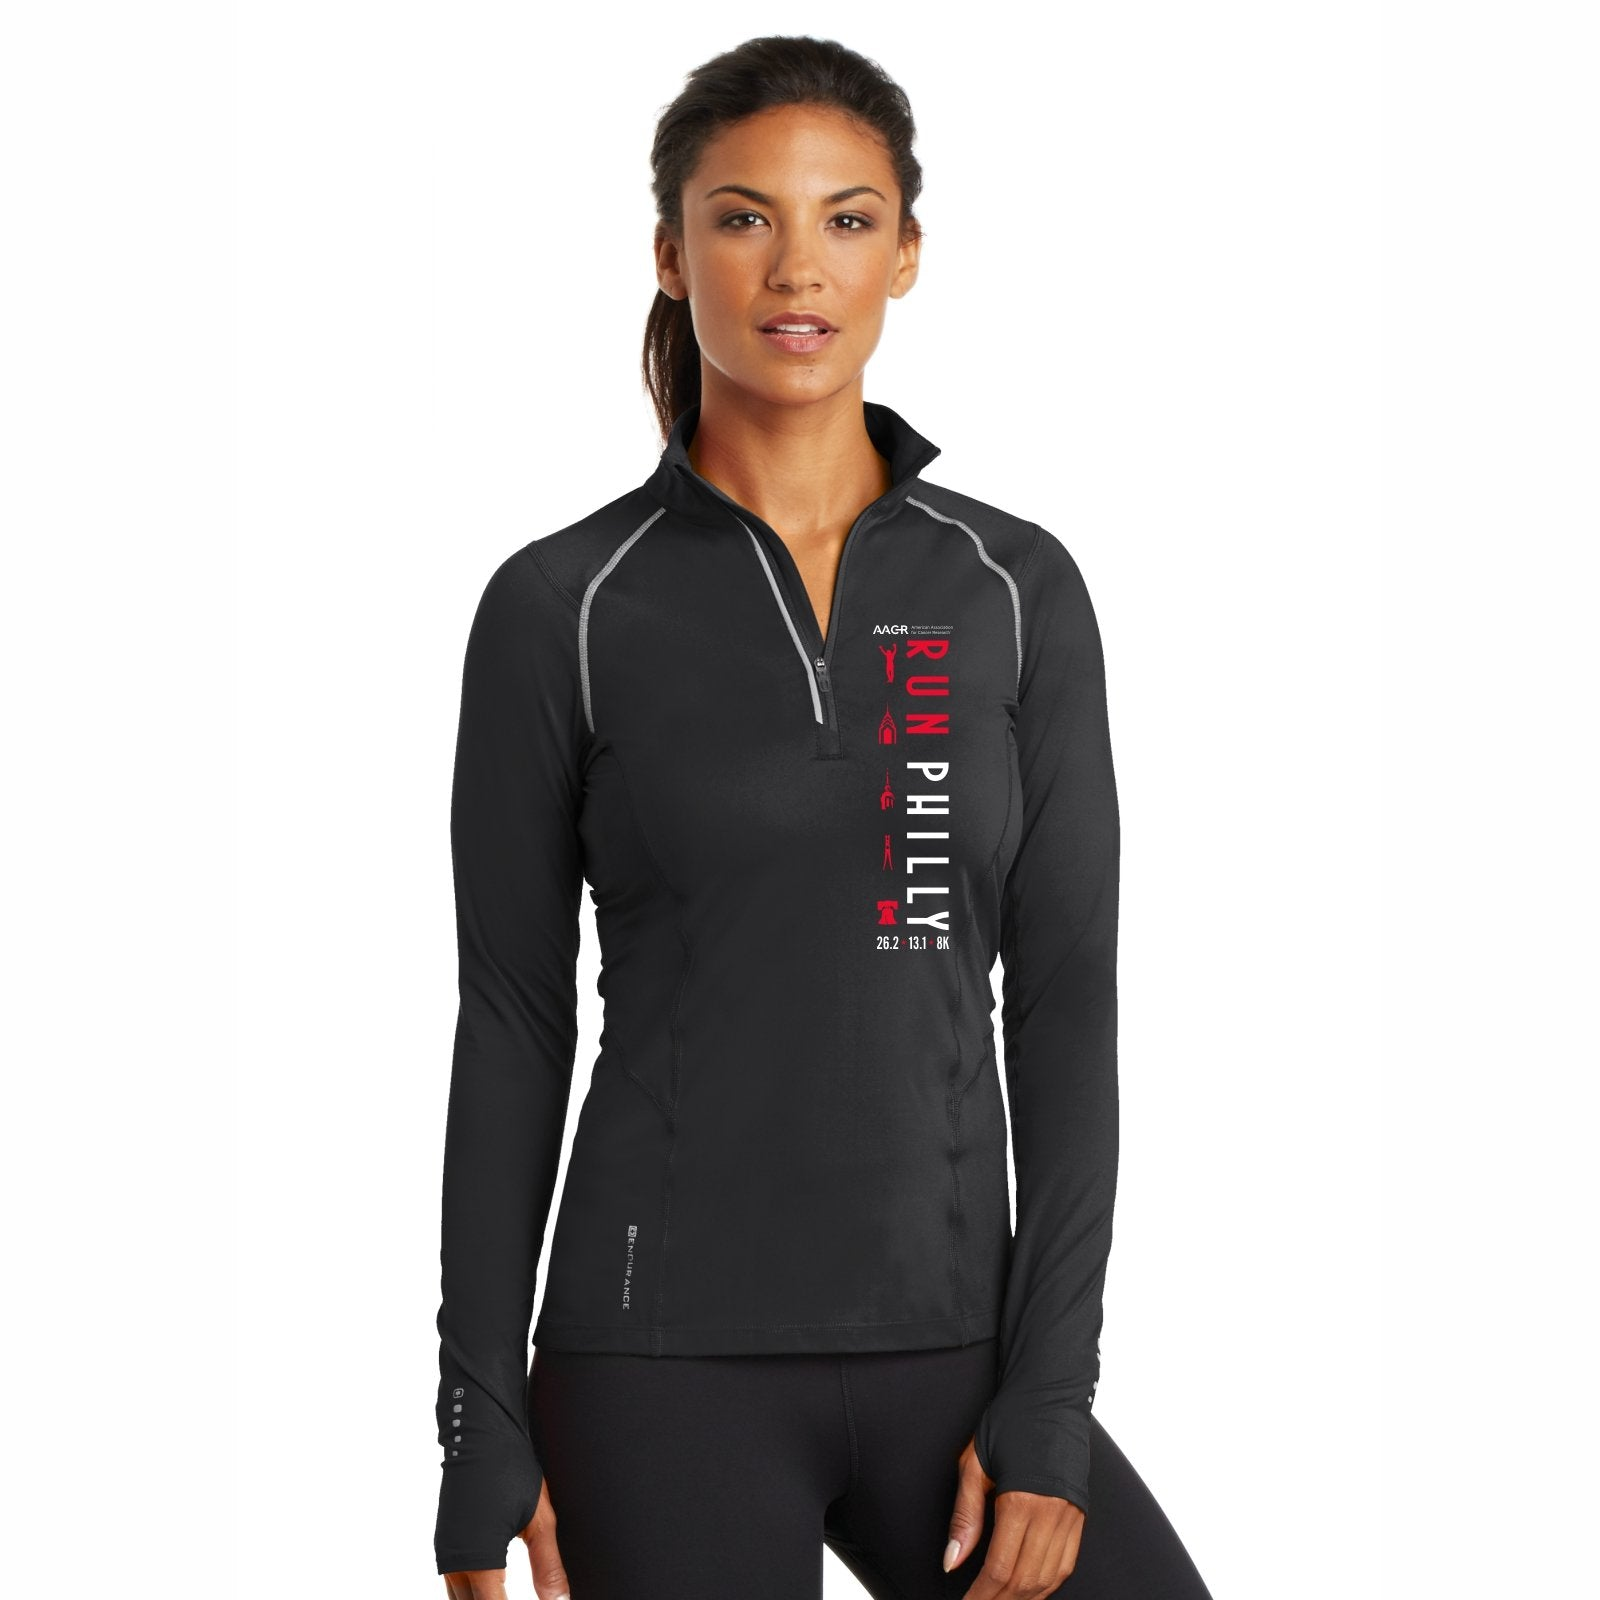 Women's OGIO Tech 1/4 Zip -Blacktop 'LCP Run Philly Design' - AACR Philadelphia Marathon